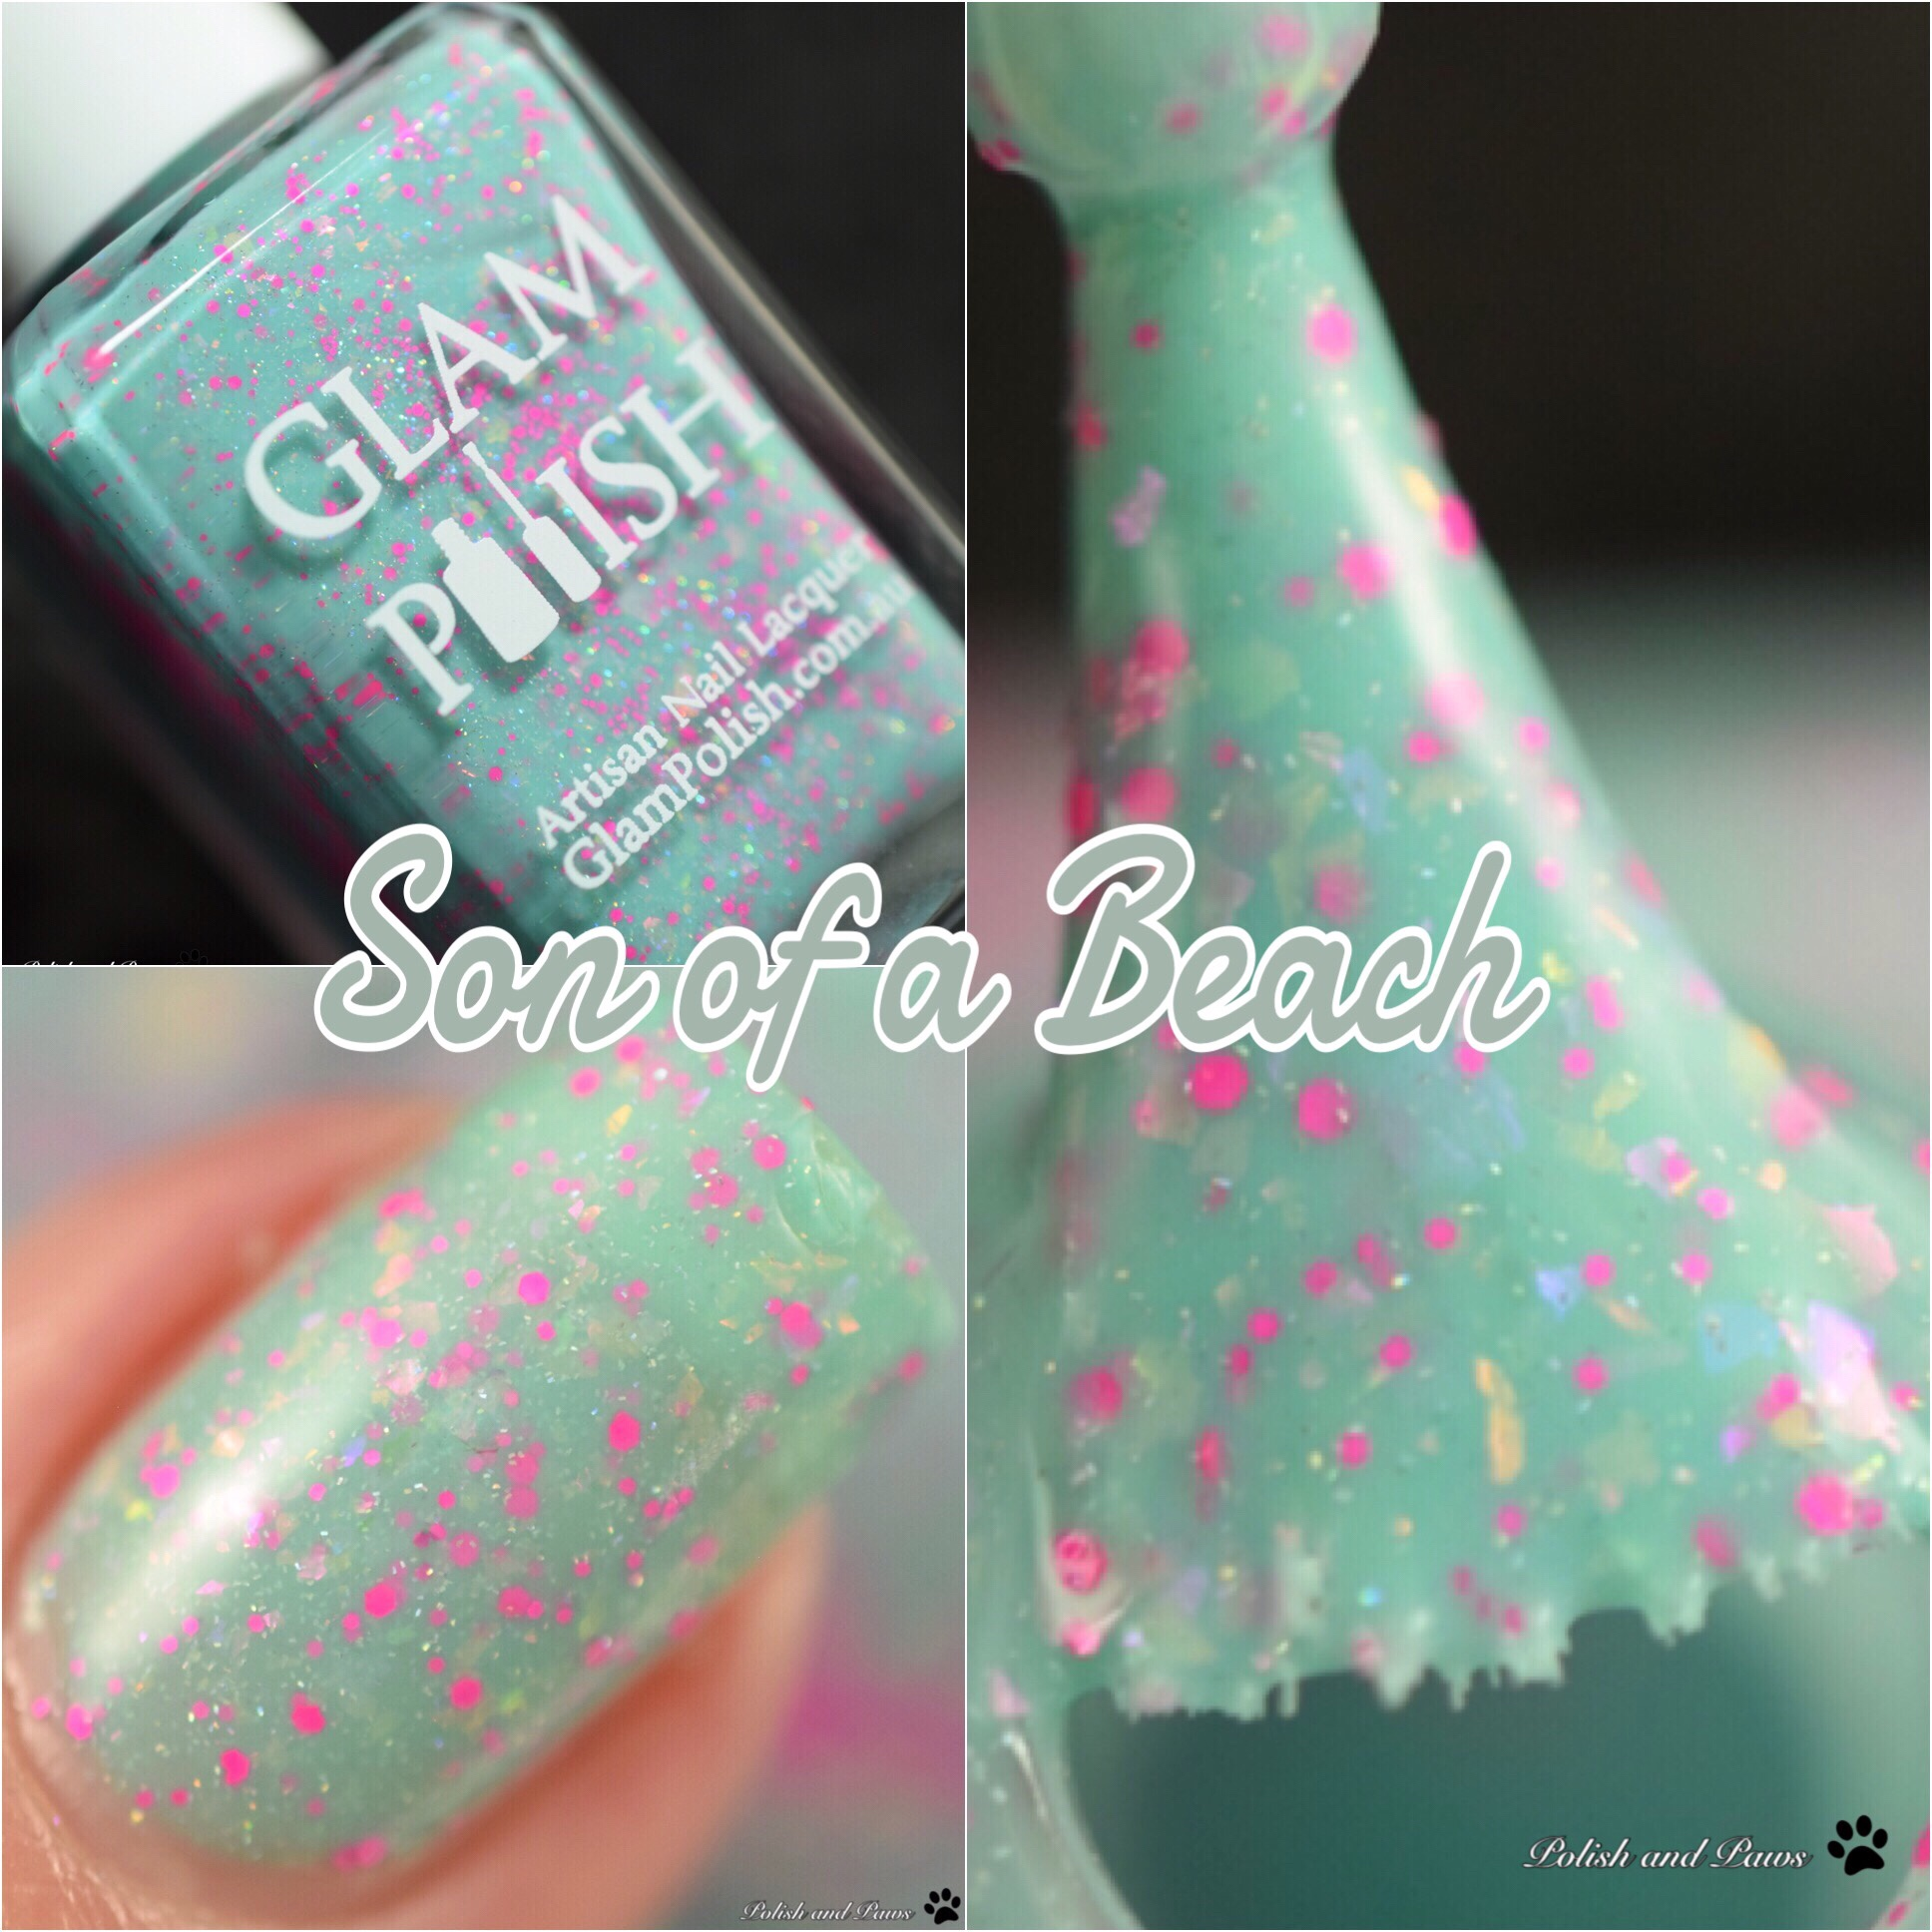 Glam Polish Son of a Beach